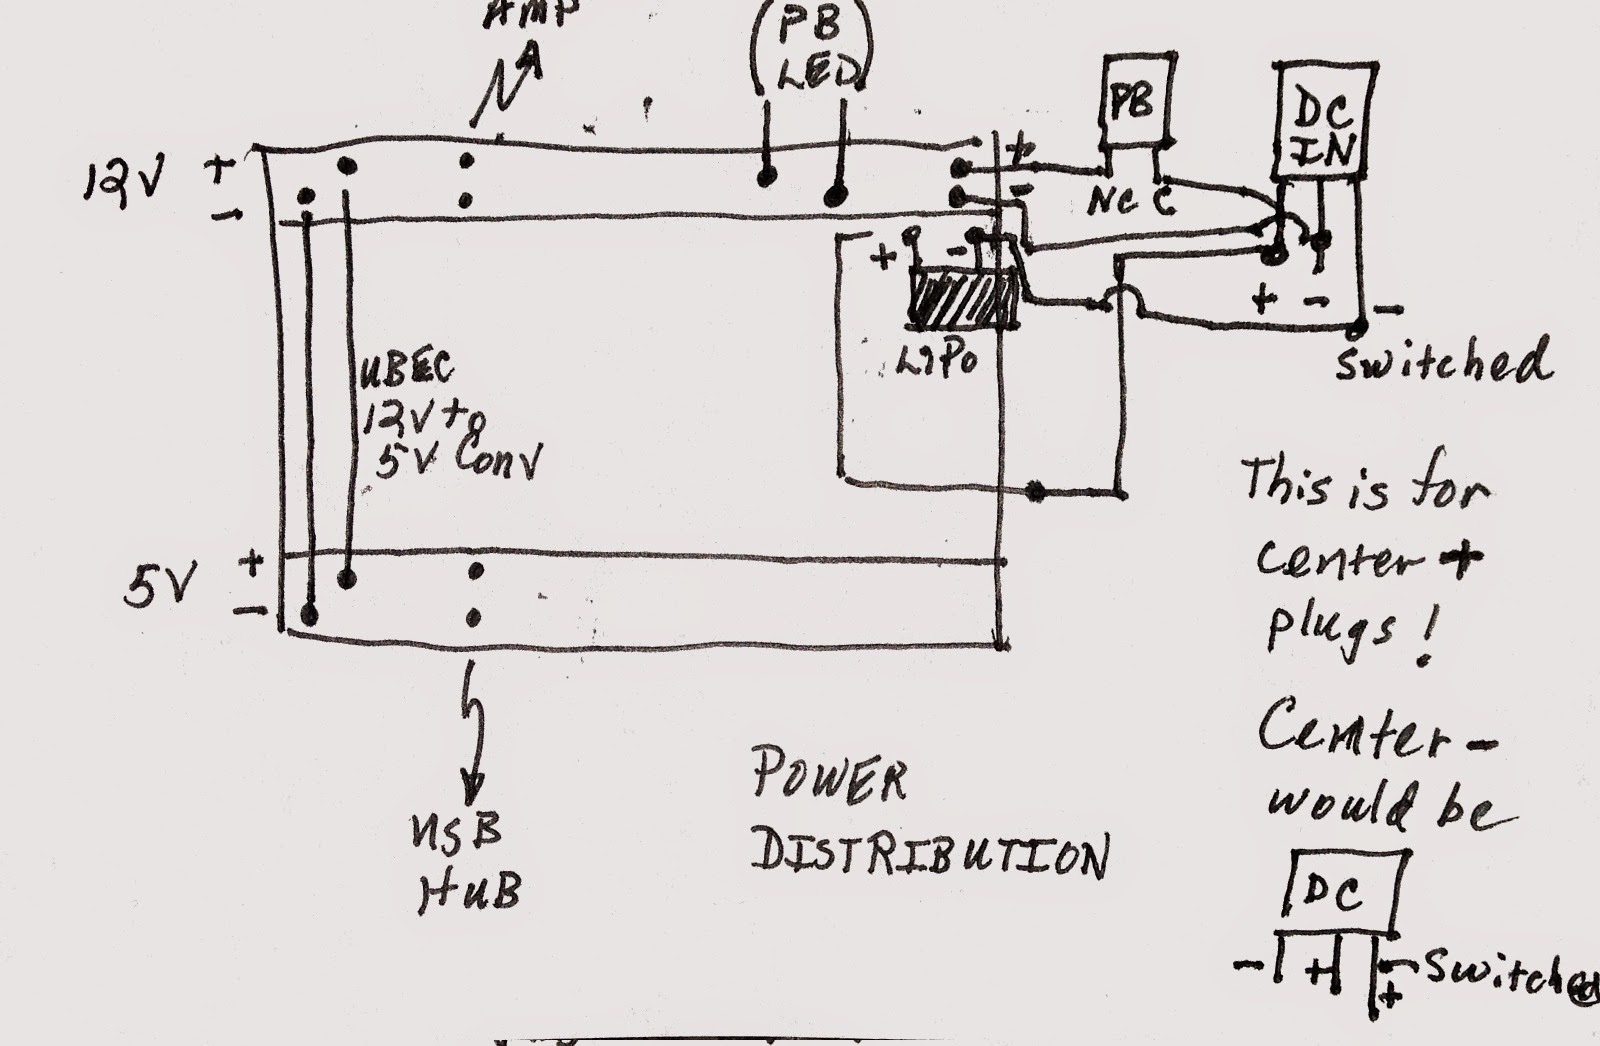 diy home wiring diagram thisoldgeek: back in black - a diy raspberry pi boombox ...